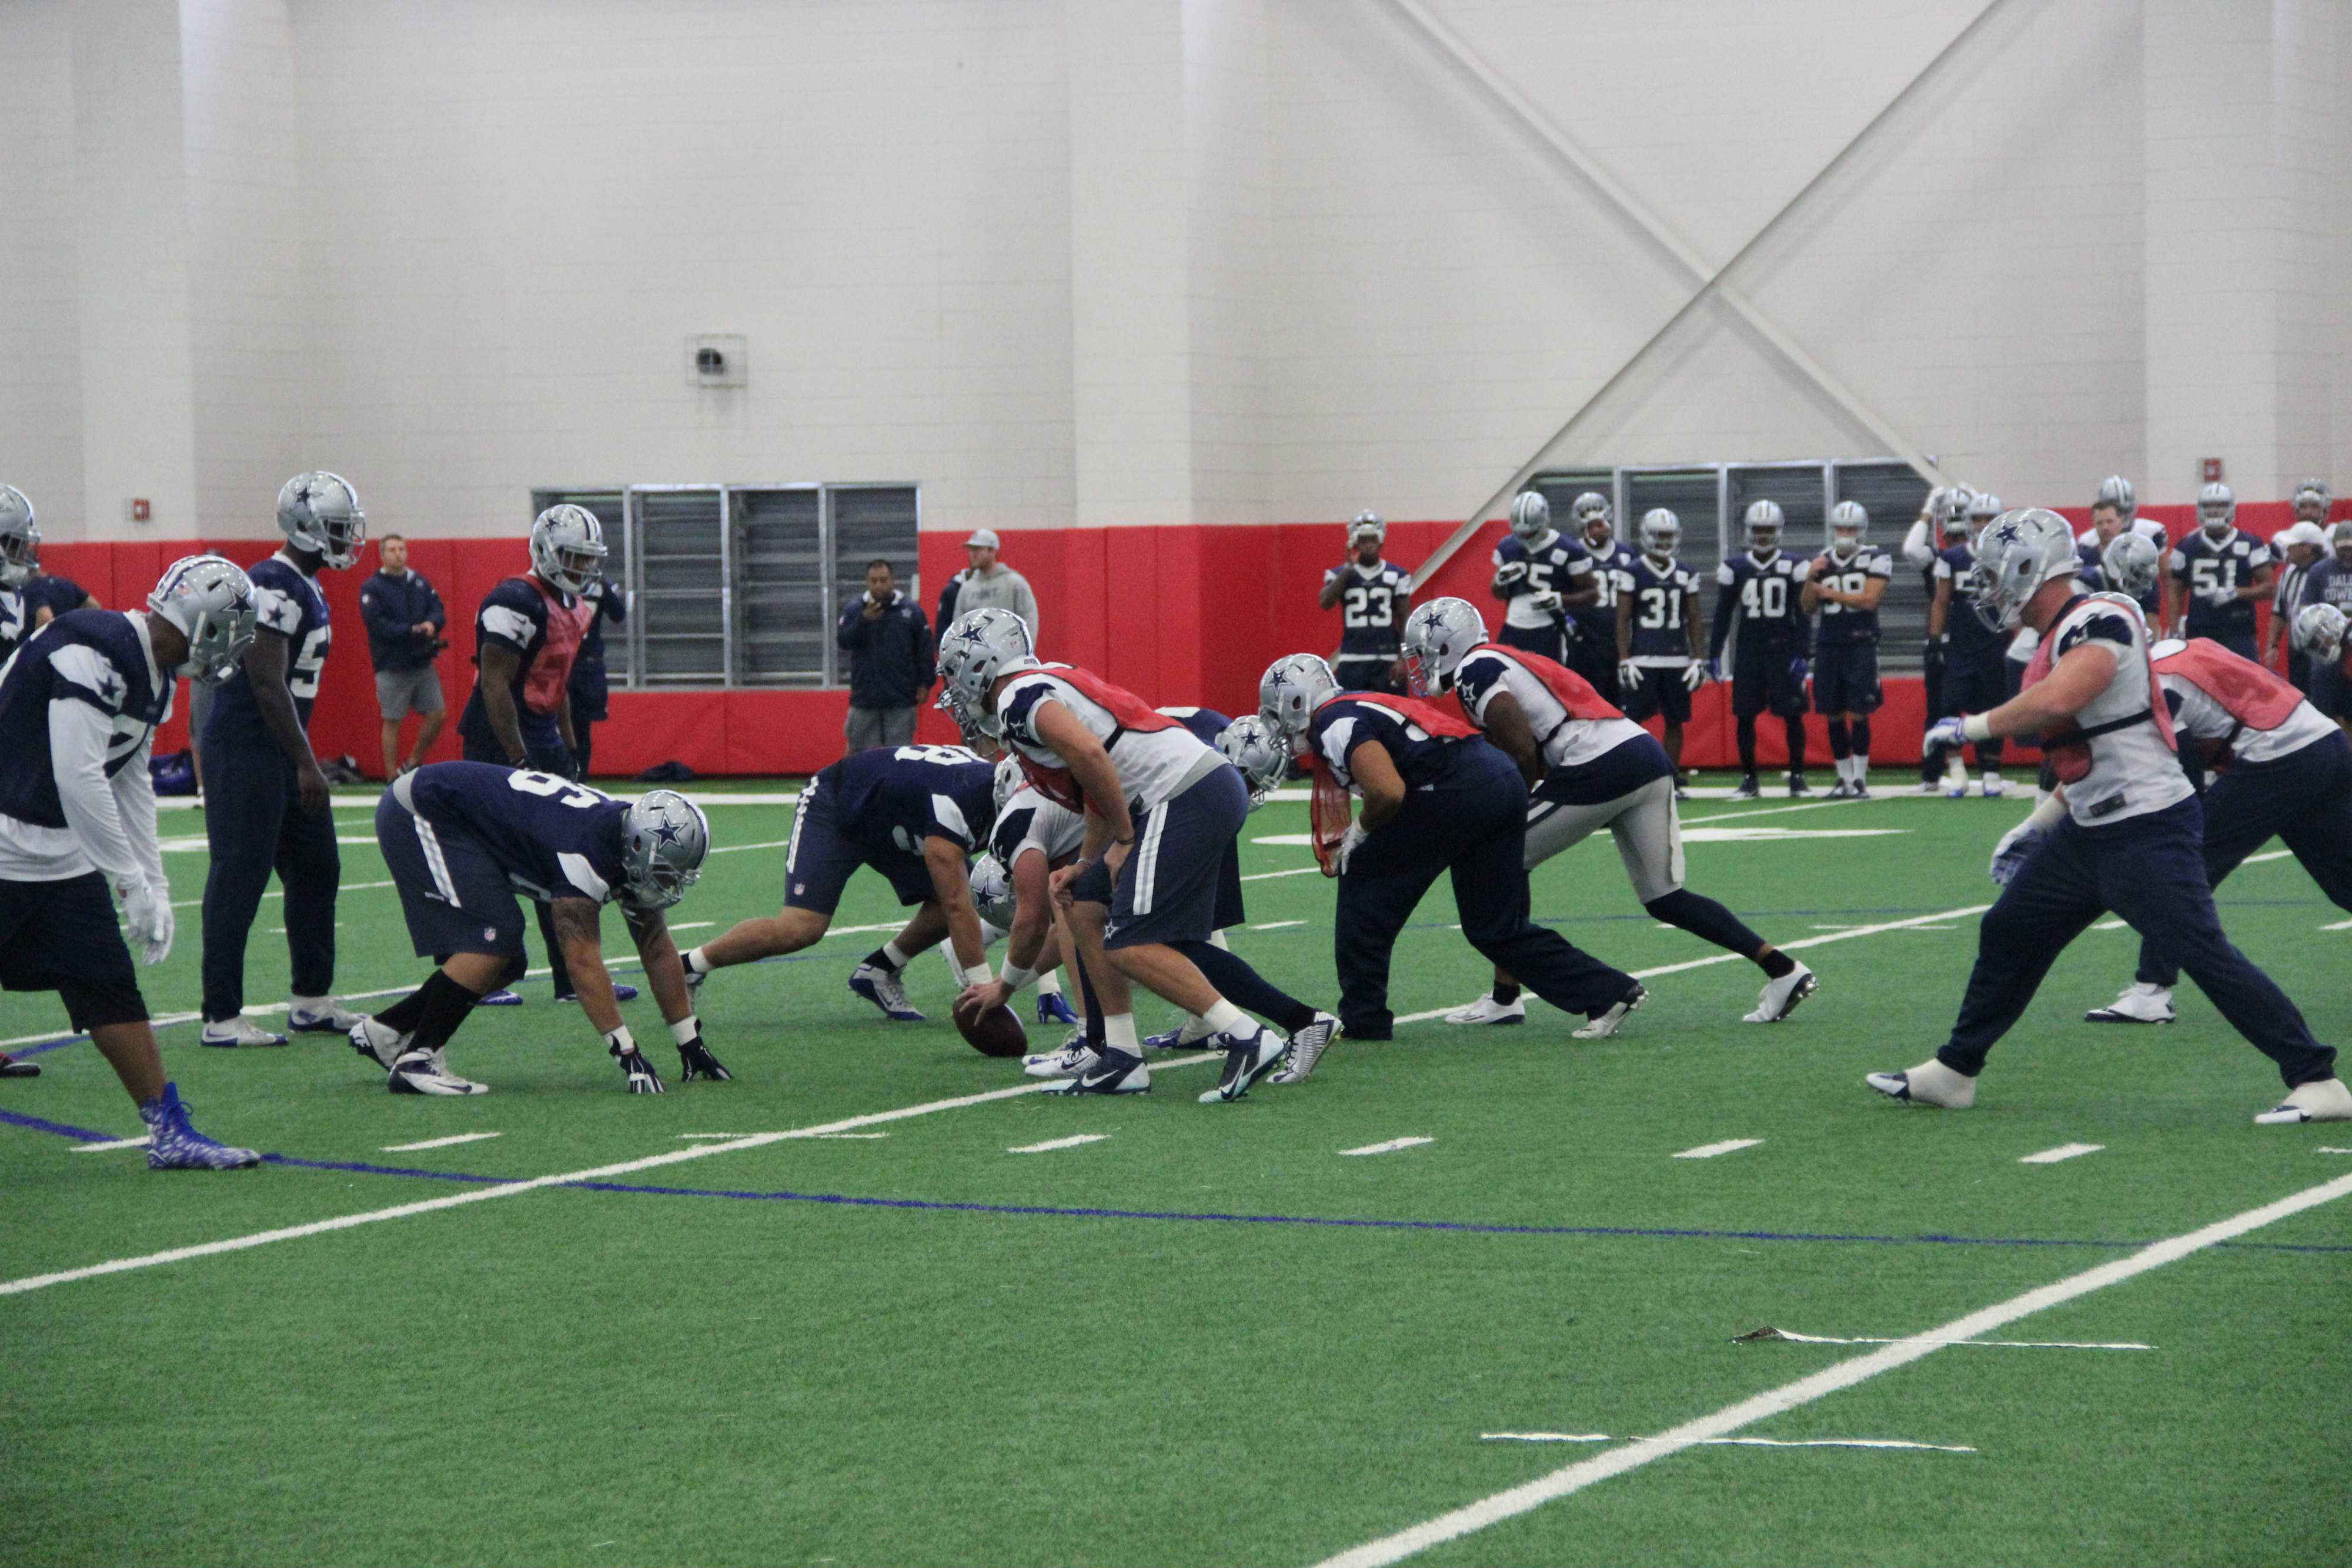 The Dallas Cowboys have a special teams practice in the Coppell turf room this October. Photo by Mallorie Munoz.